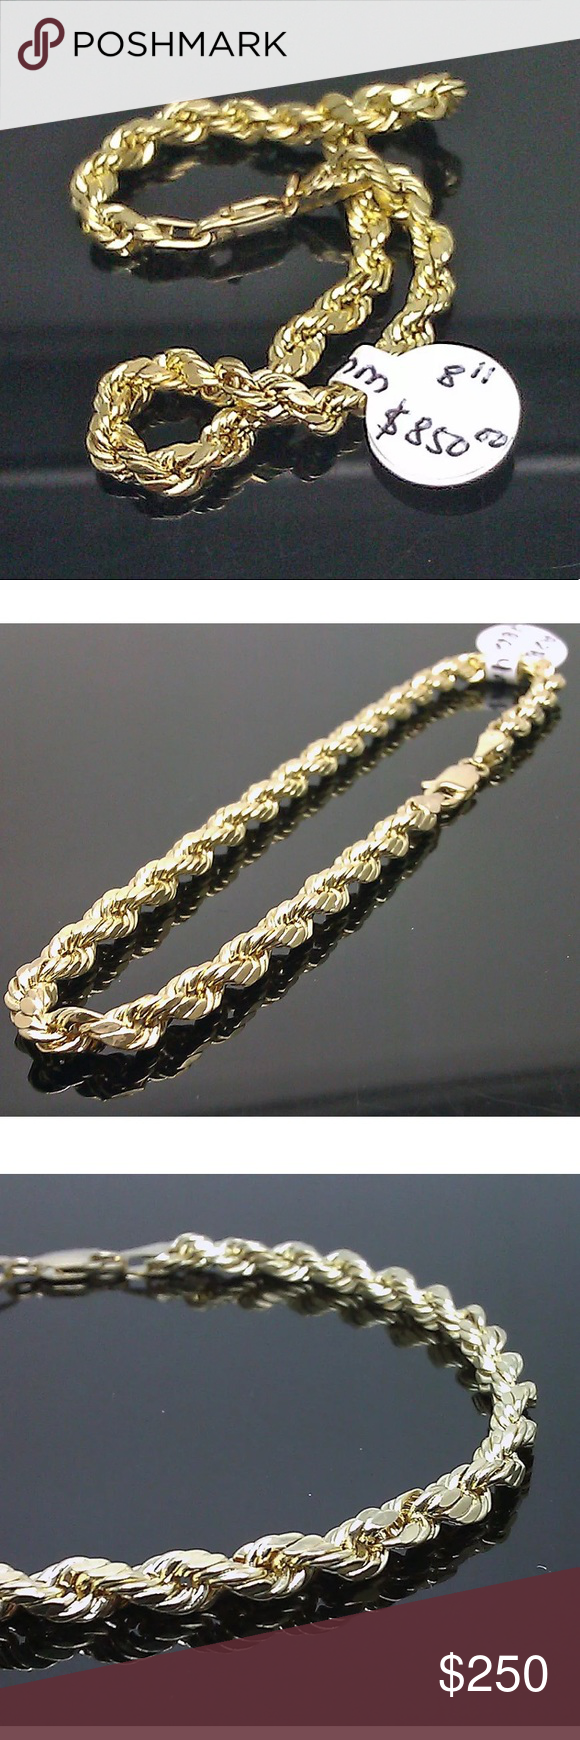 K solid gold thick rope bracelet nwt pinterest solid gold